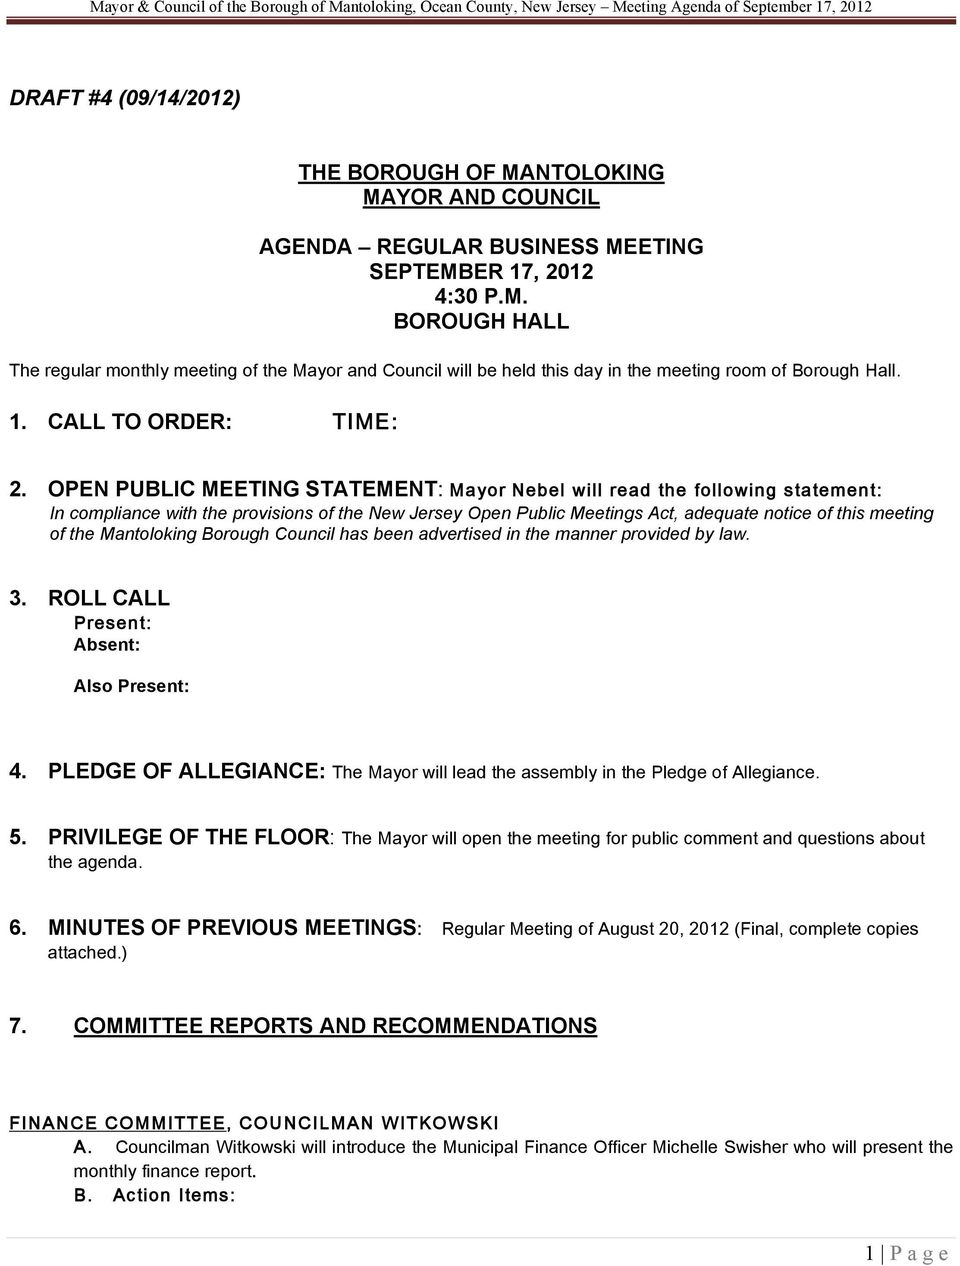 OPEN PUBLIC MEETING STATEMENT: Mayor Nebel will read the following statement: In compliance with the provisions of the New Jersey Open Public Meetings Act, adequate notice of this meeting of the